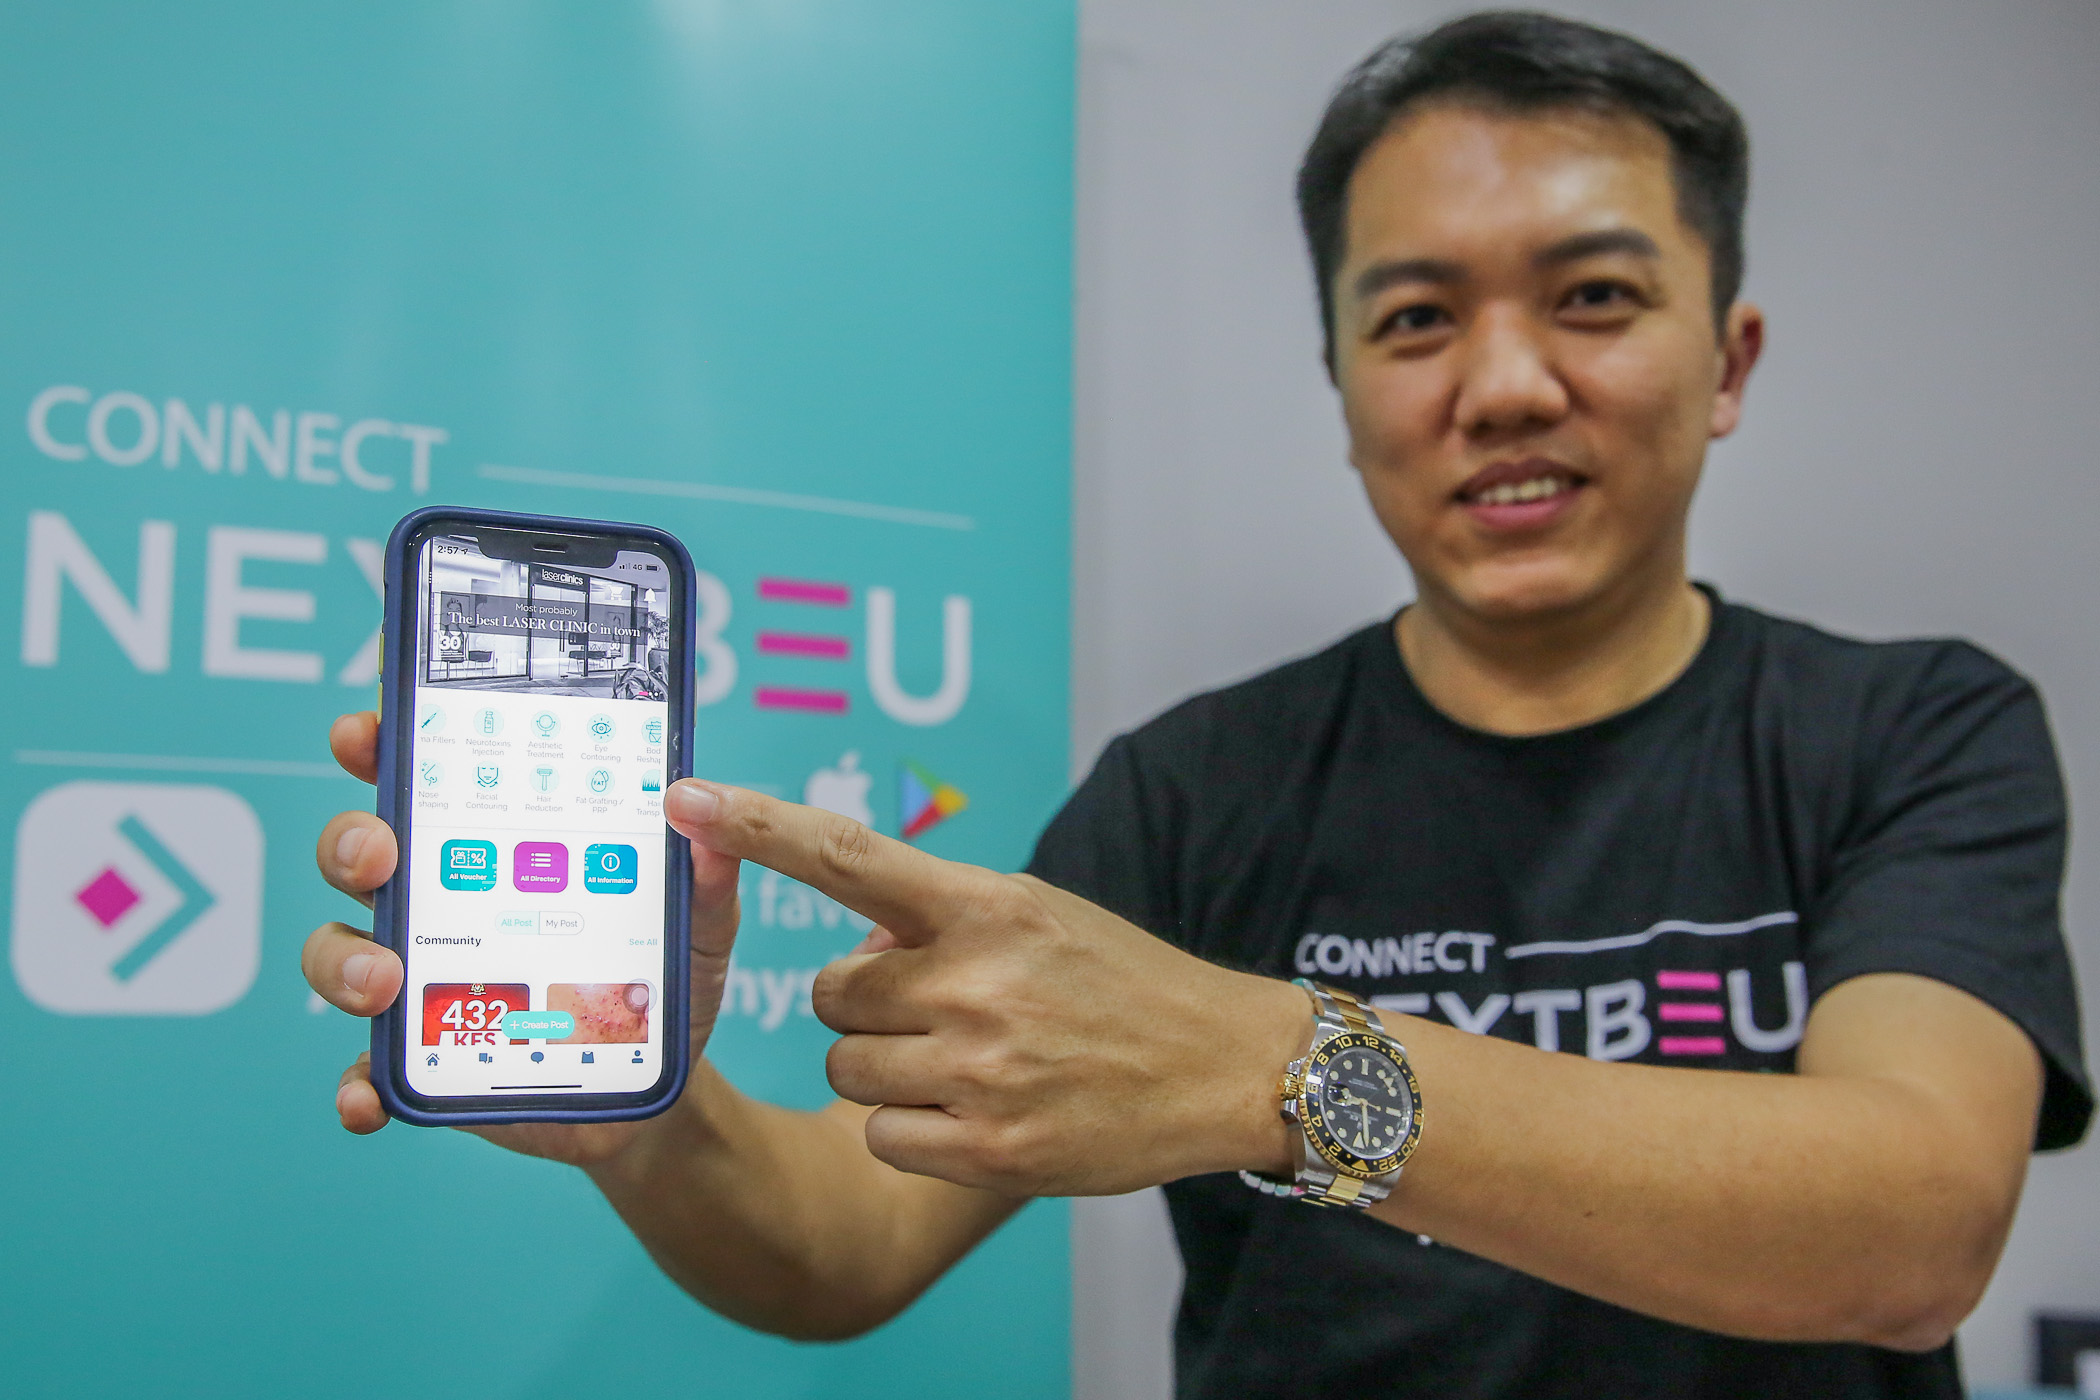 Cosderm Sdn Bhd managing director Tom Goh unveils NextBeu mobile application. — Picture by Yusof Mat Isa